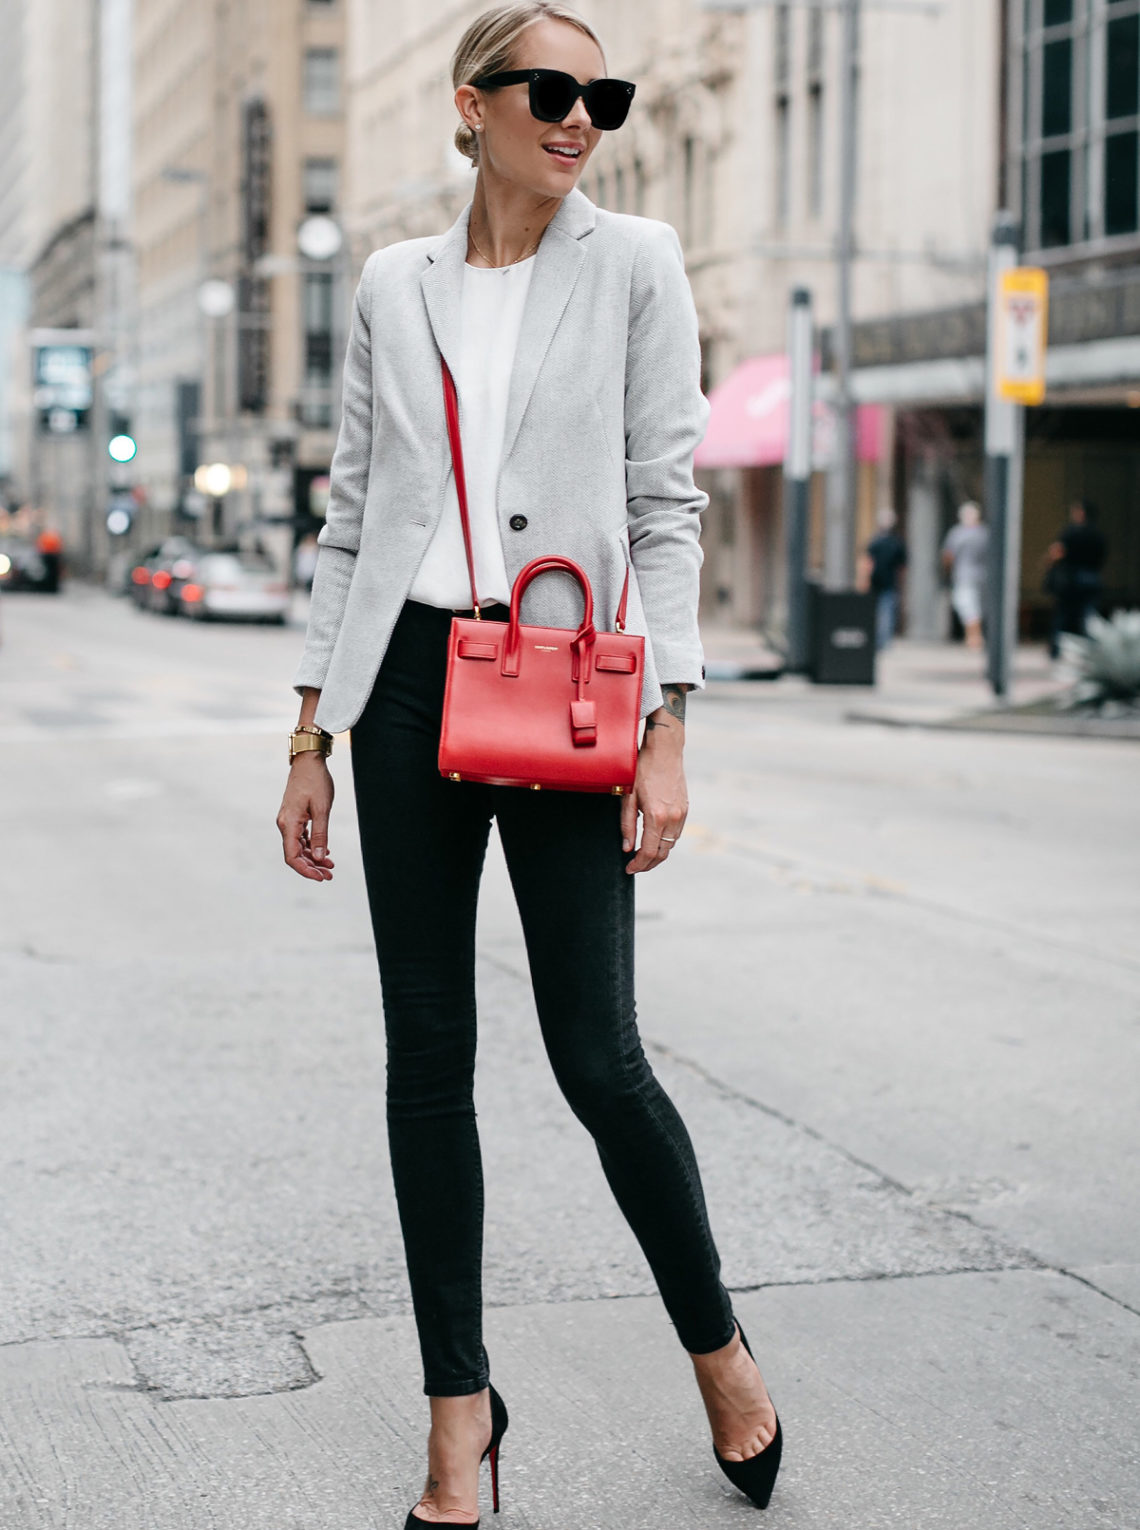 Blonde Woman Wearing Grey Blazer White Top Black Skinny Jeans Black Pumps Saint Laurent Sac de Jour Nano Red Fashion Jackson Dallas Blogger Fashion Blogger Street Style